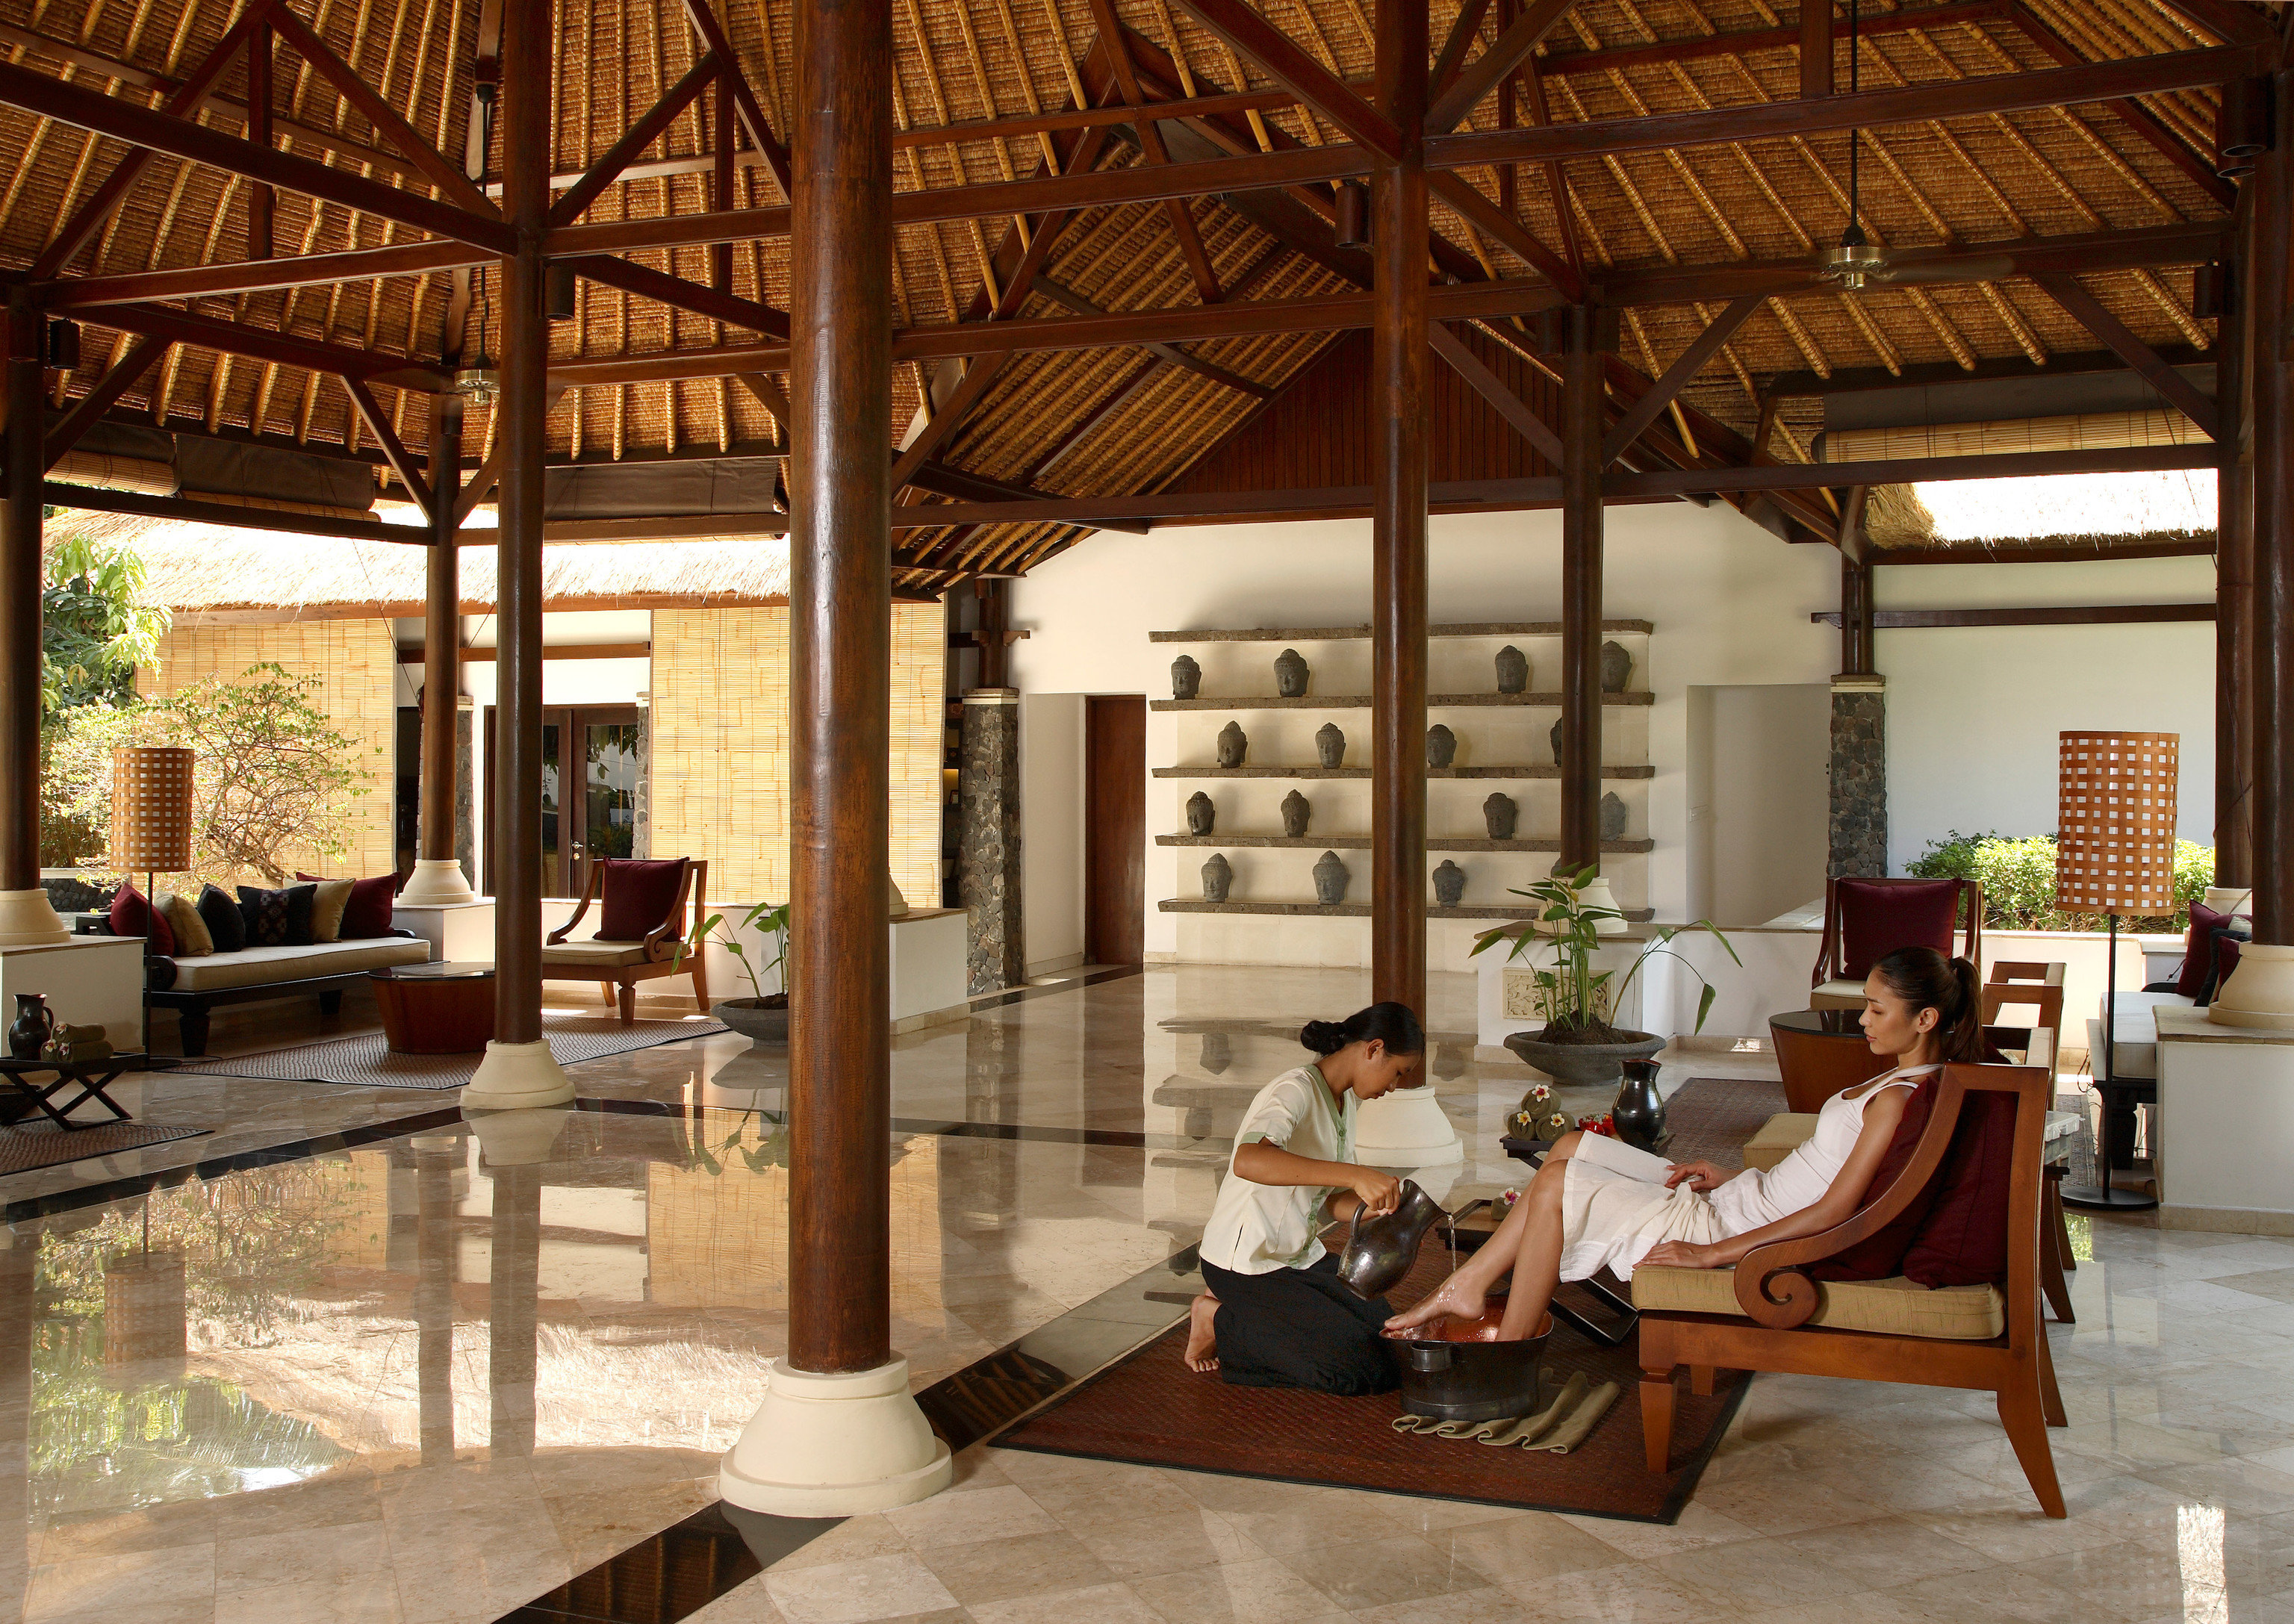 property living room home Villa outdoor structure Resort cottage Lobby farmhouse